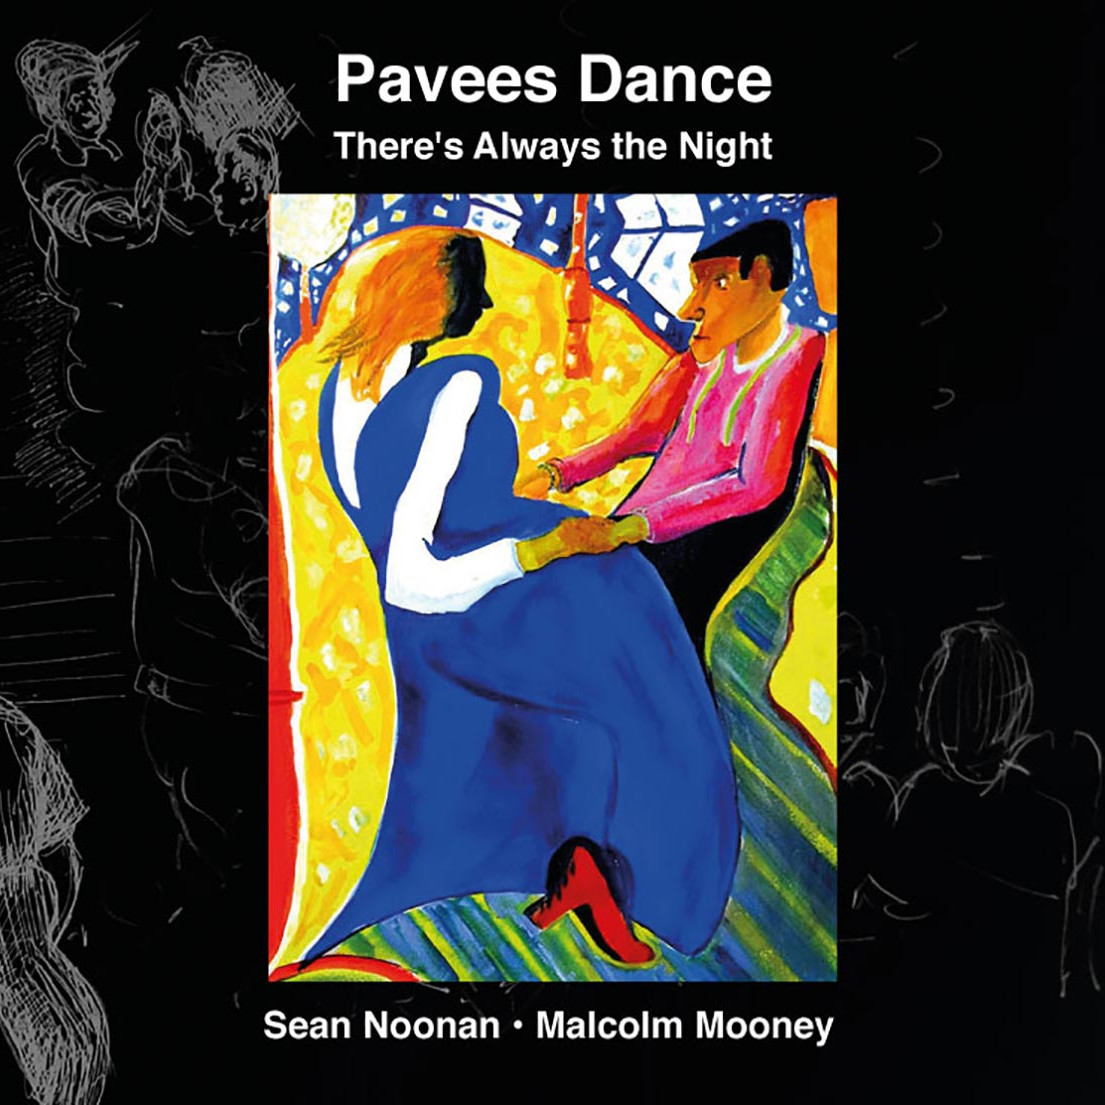 Sean Noonan Pavees Dance — There's Always the Night